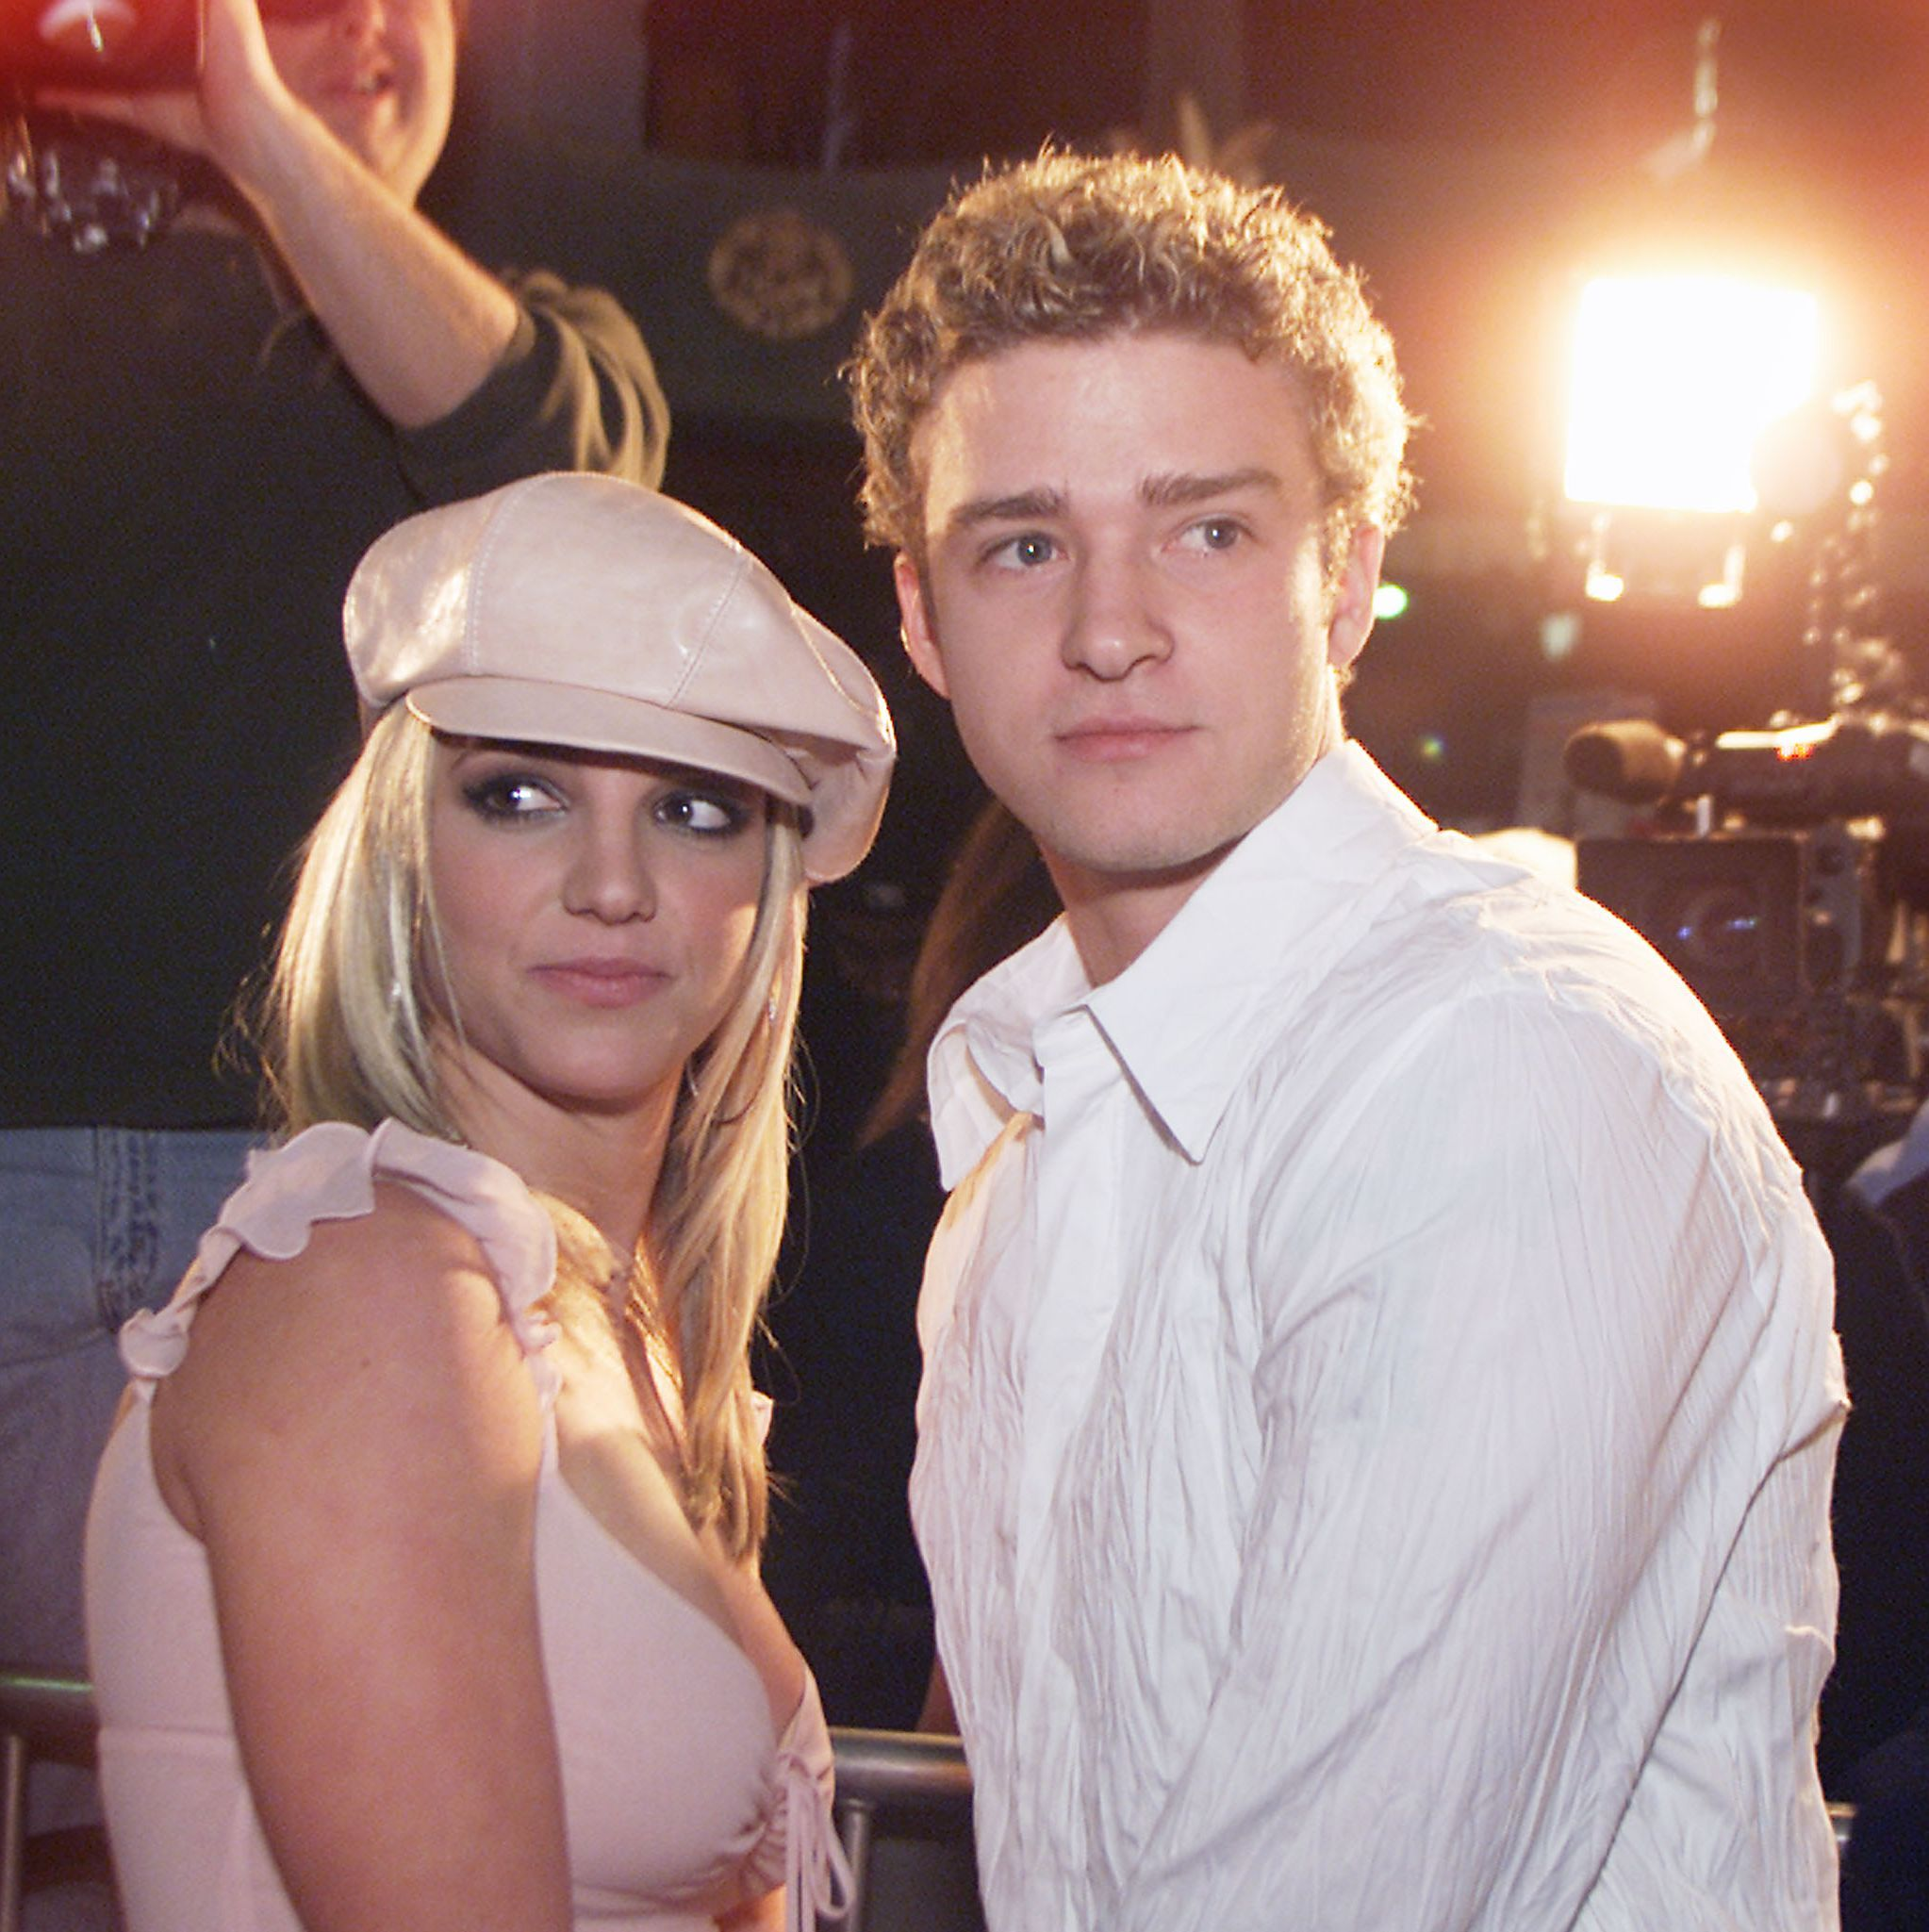 Britney Spears Just Called Out Her Breakup With Justin